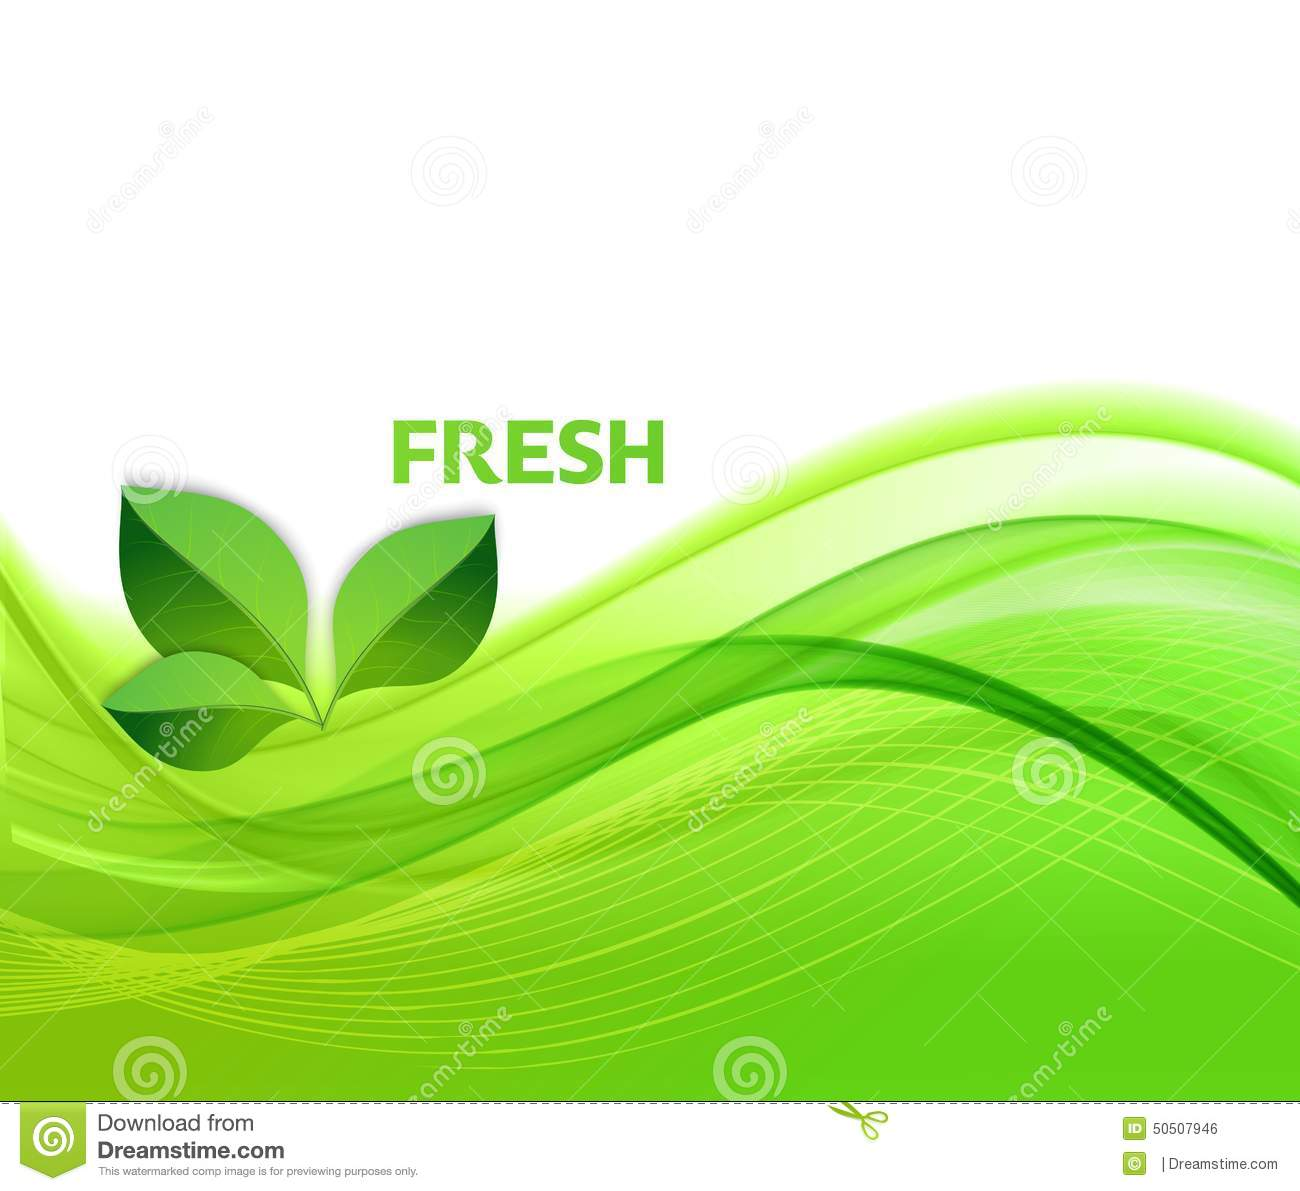 Abstract green waves background with leaves stock vector for Green design company